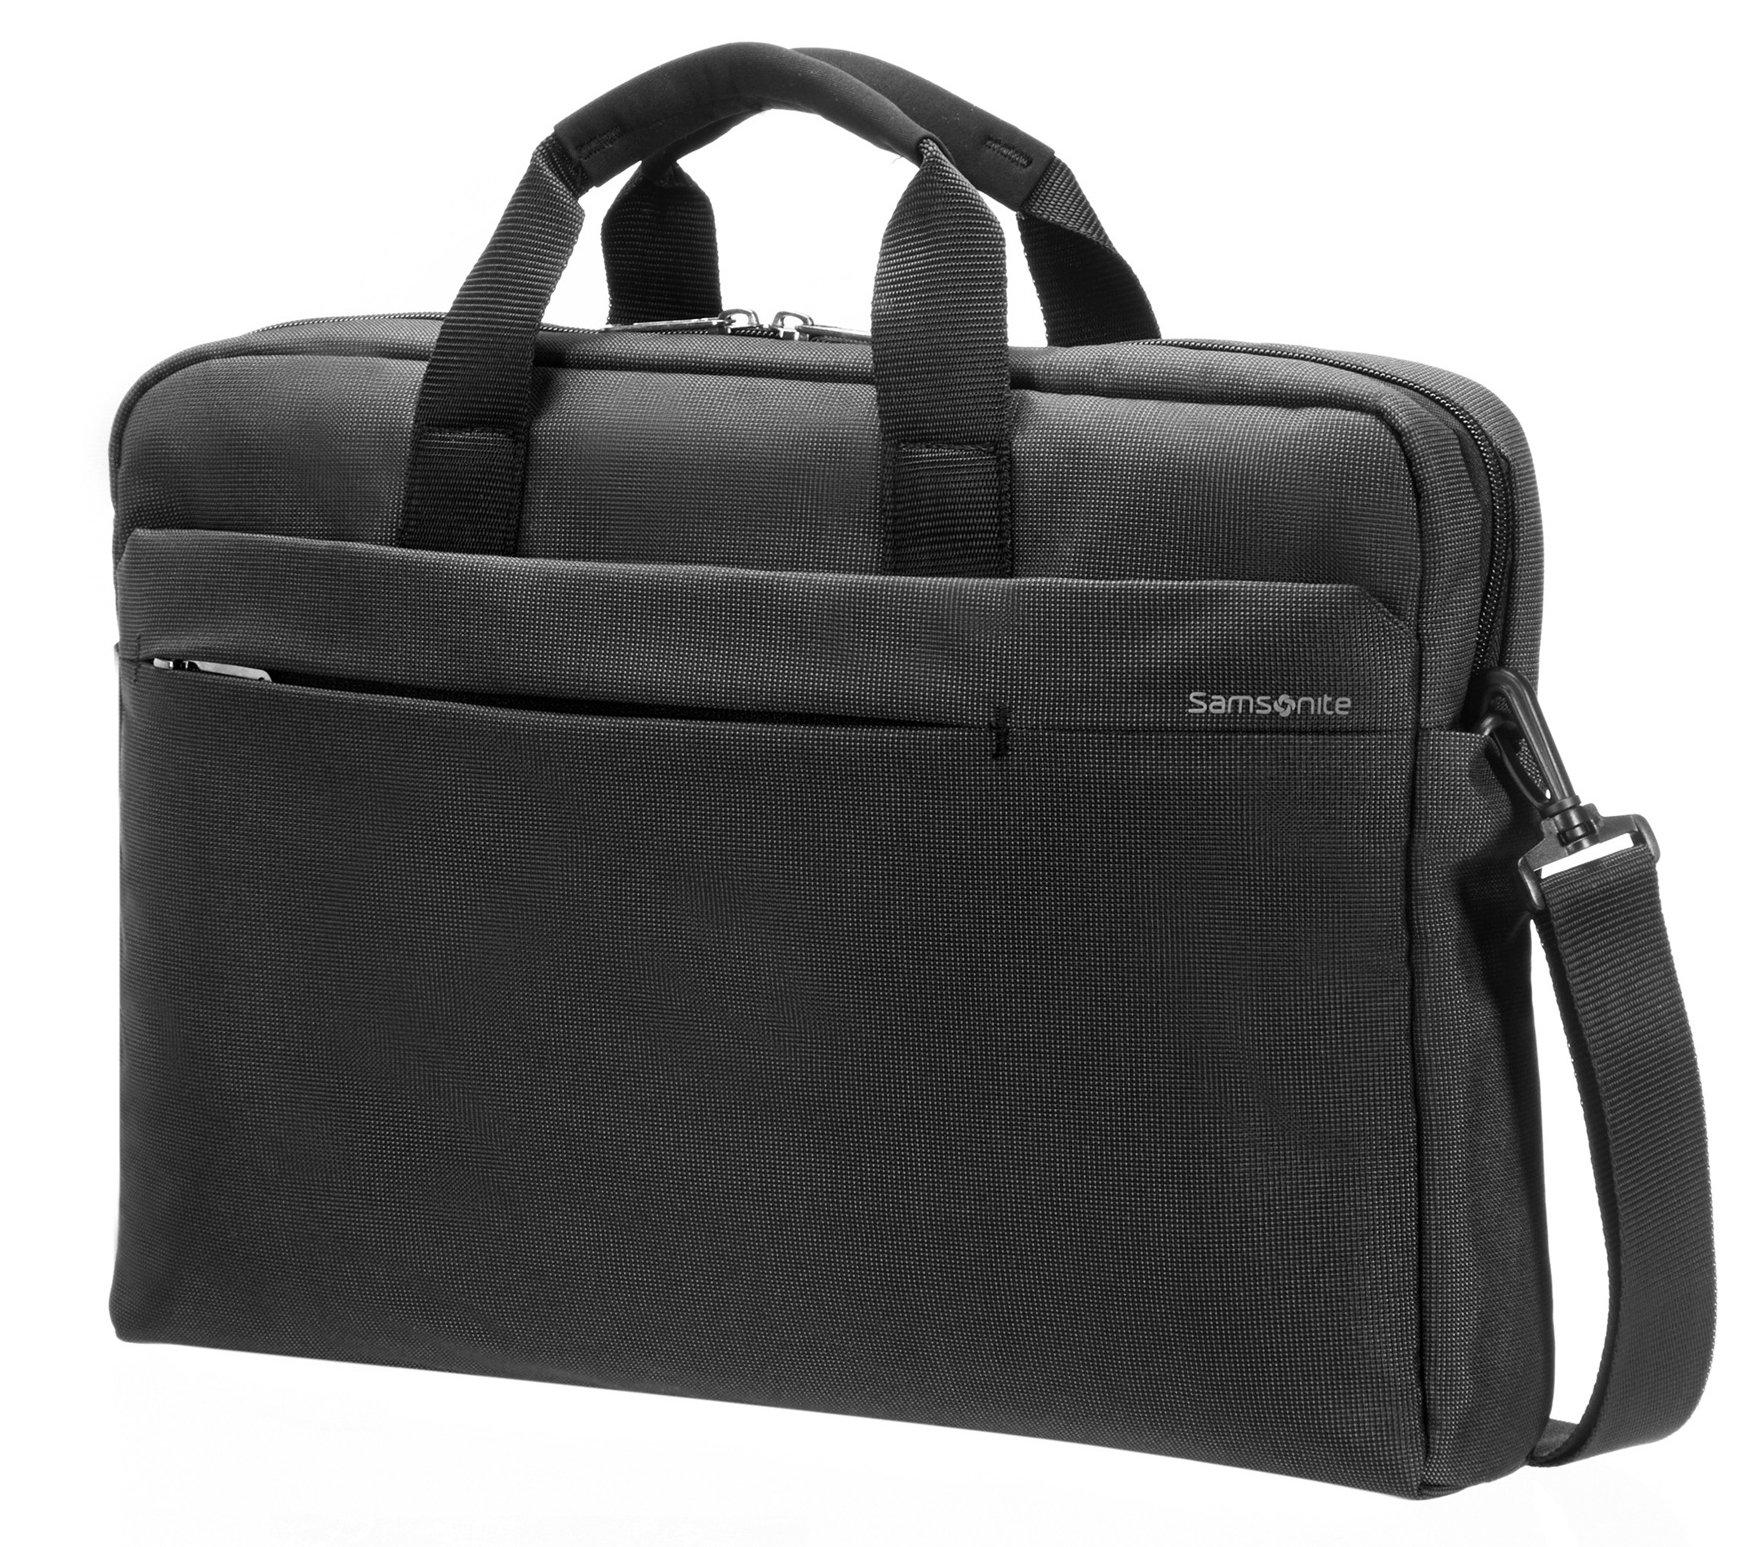 SAMSONITE - BORSE NOTEBOOK - 5414847367670